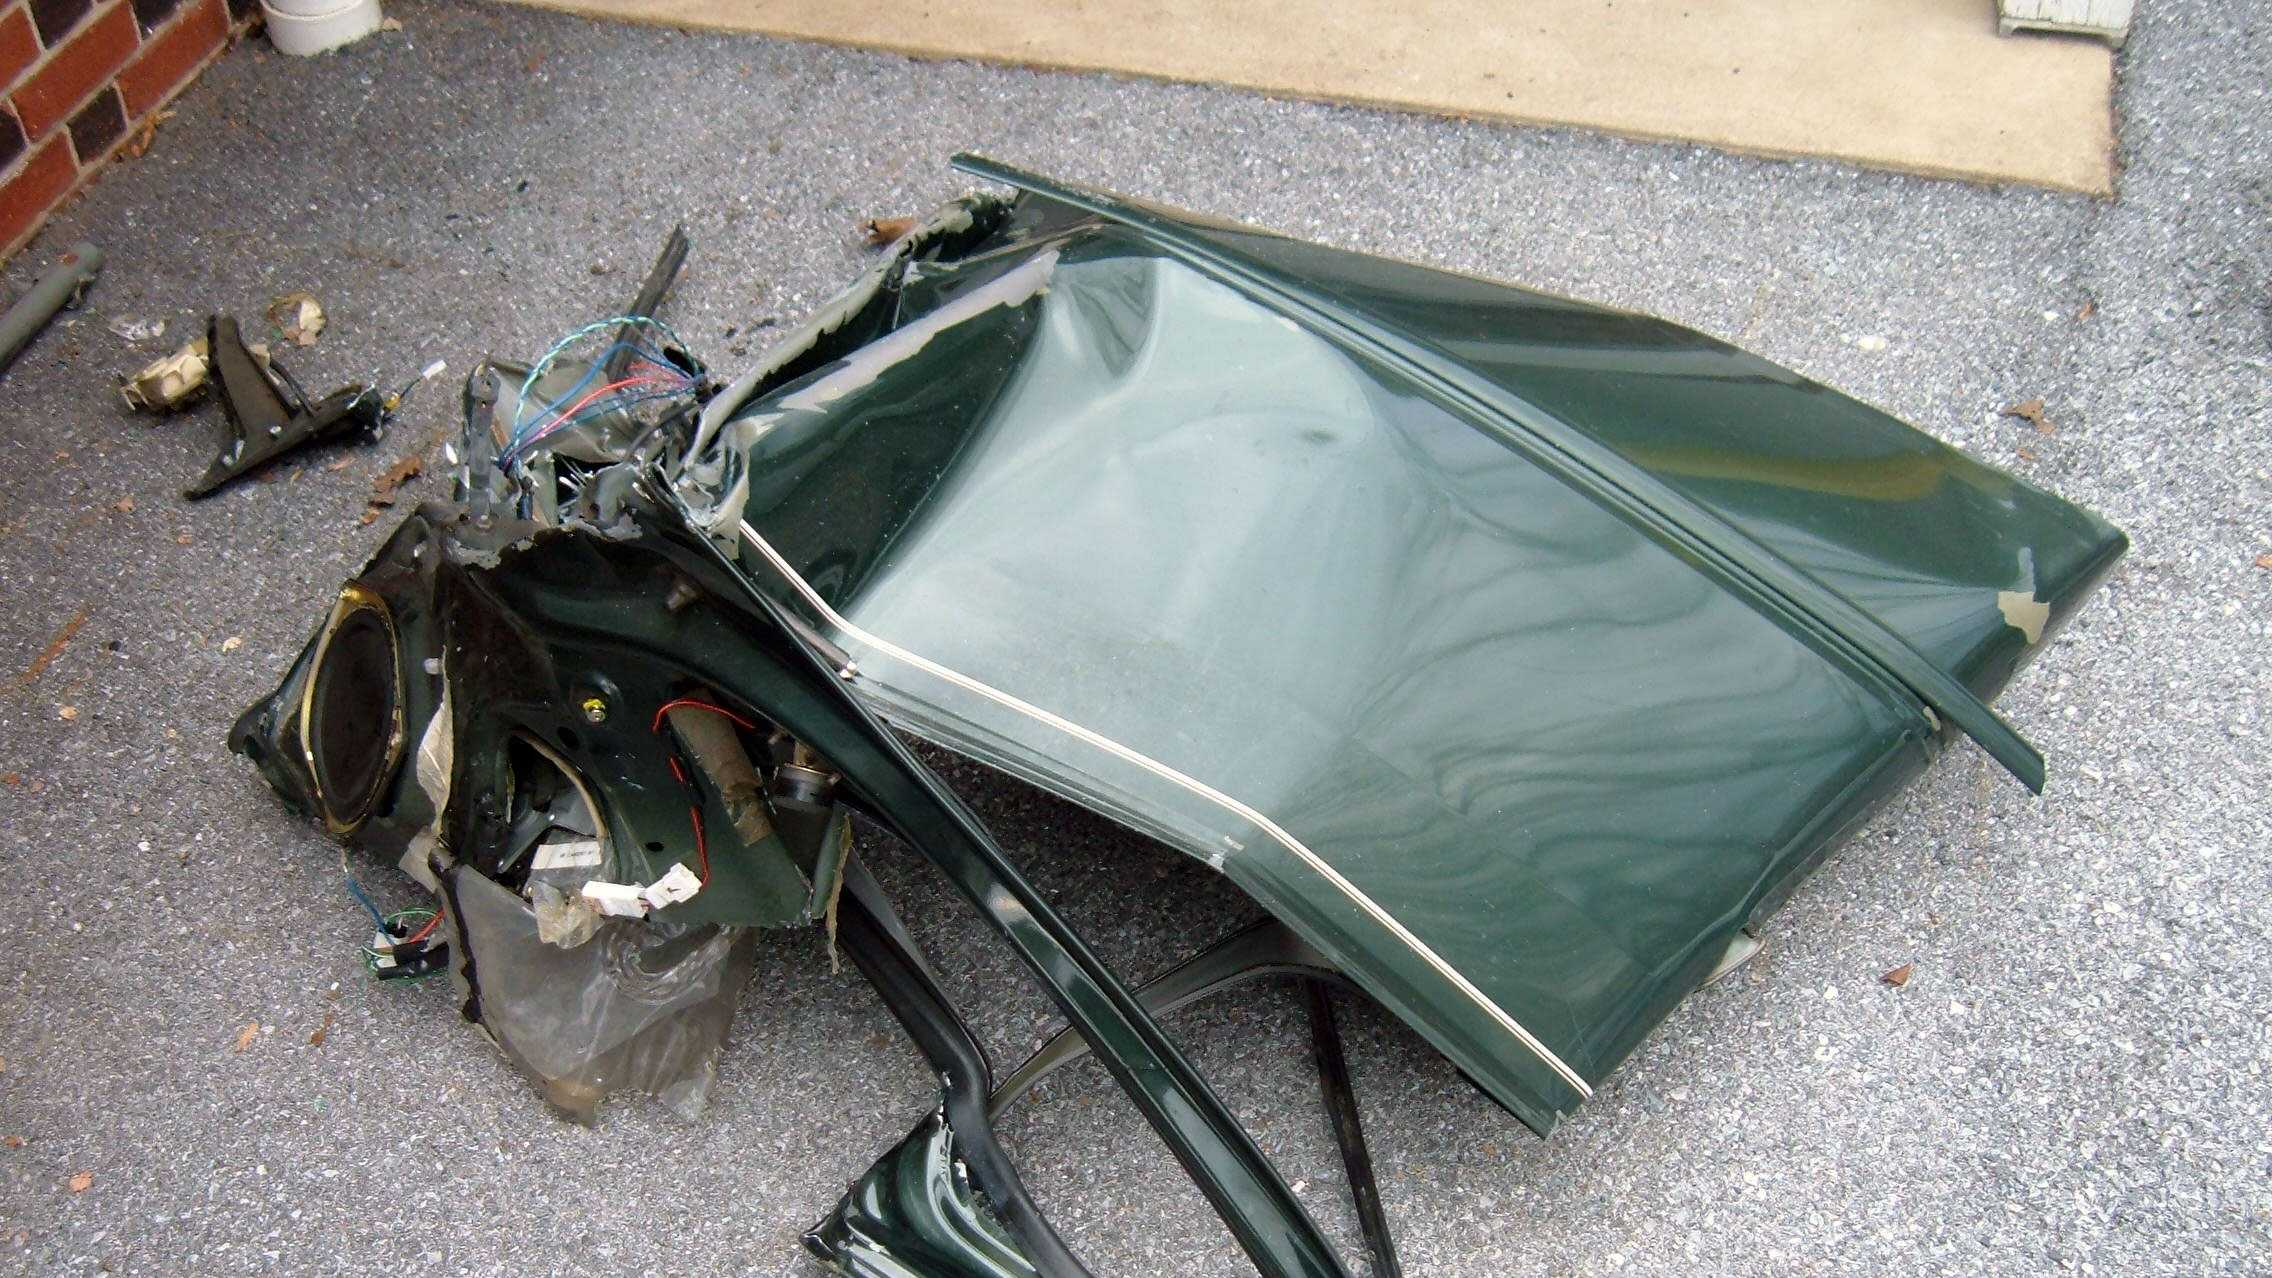 Cornwall Borough police shared this photo of the piece of Christaldi's car that was found near the crash scene.